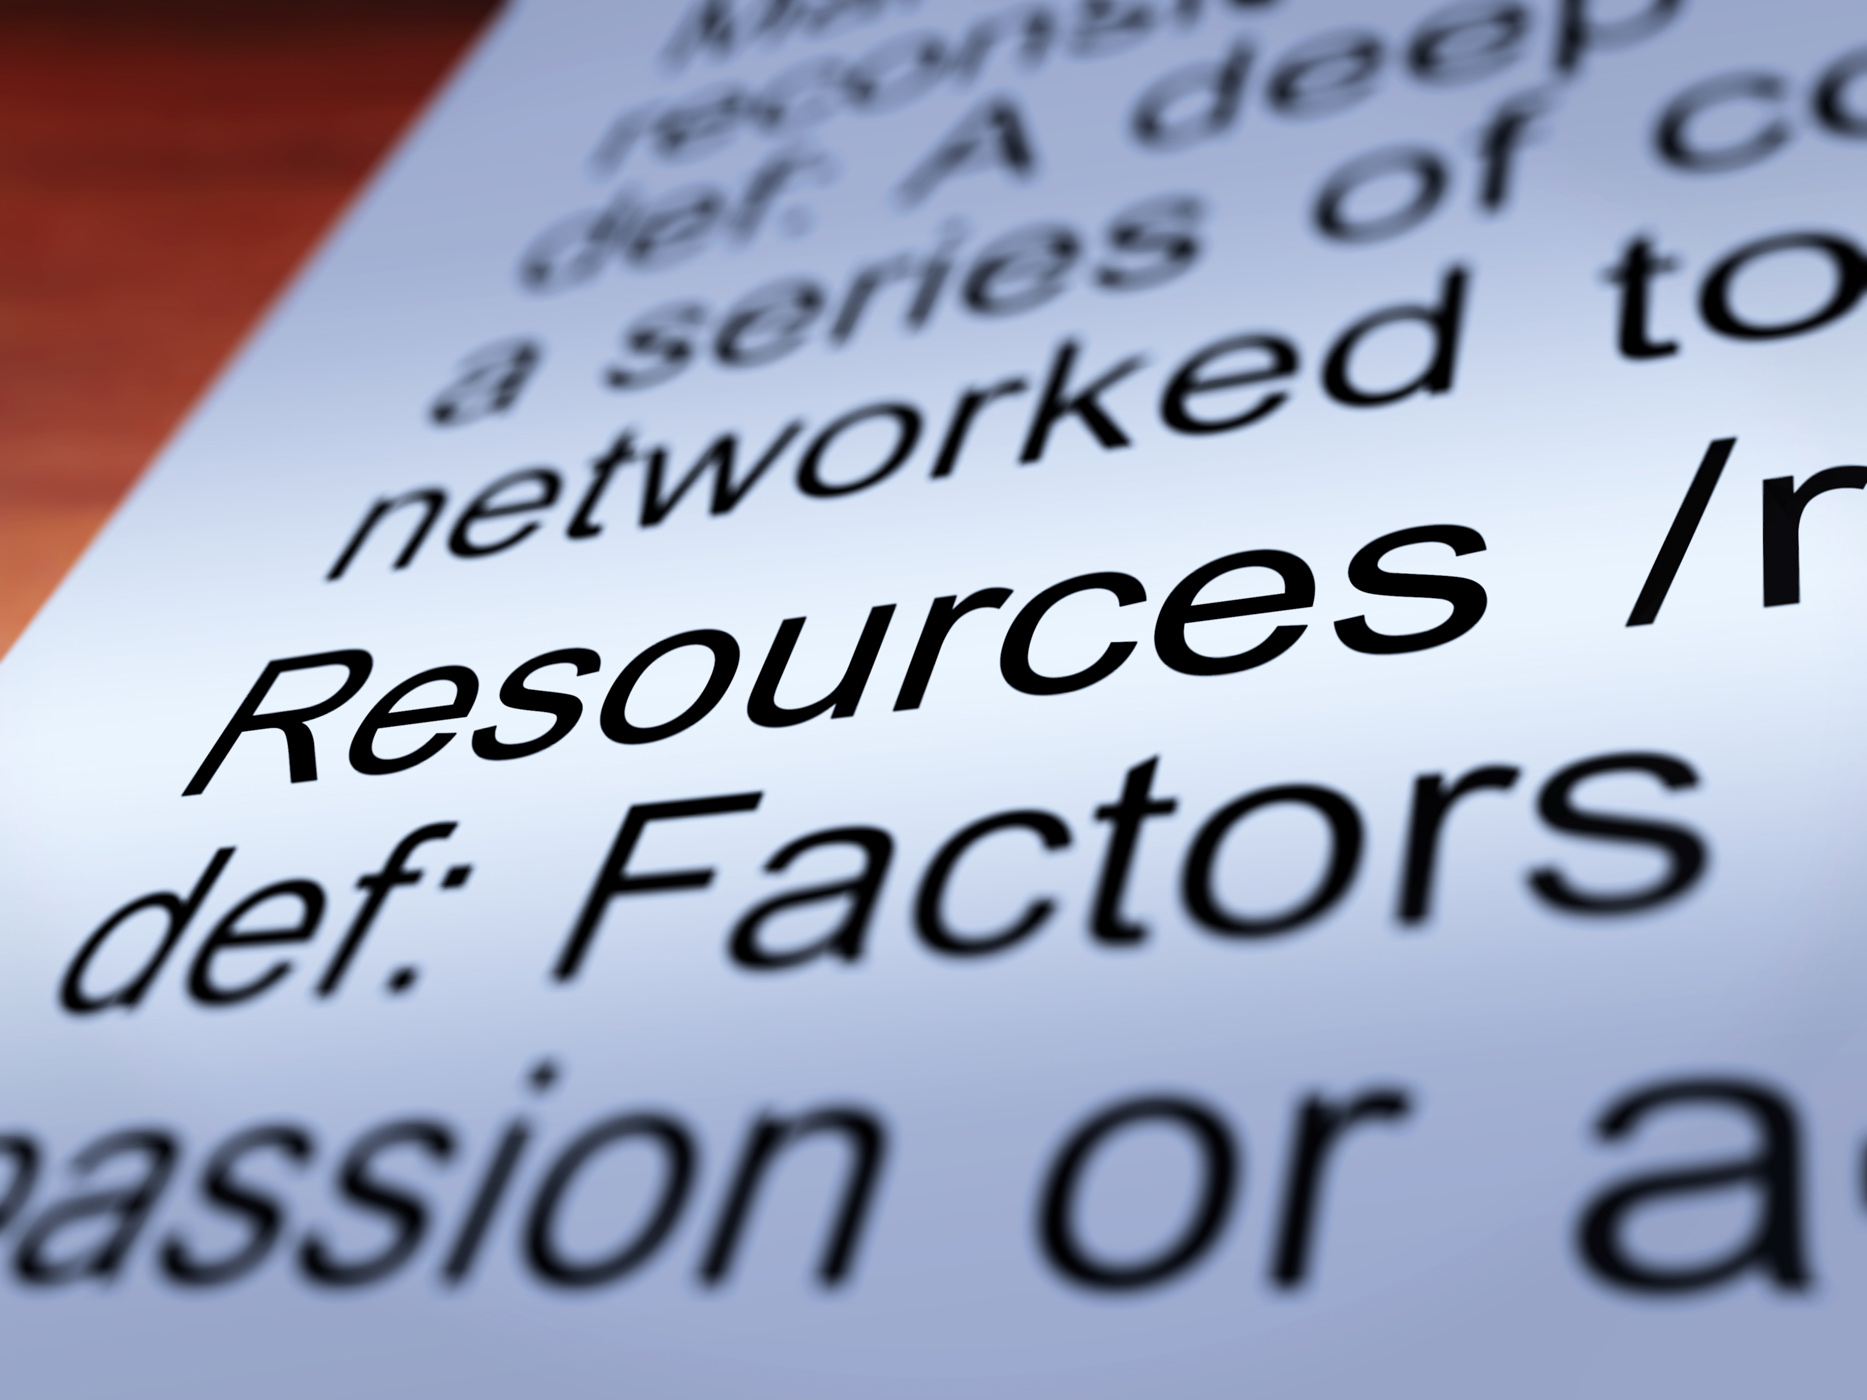 Resources Definition Closeup Showing Materials And Assets, Assets, Business, Definition, Energy, HQ Photo